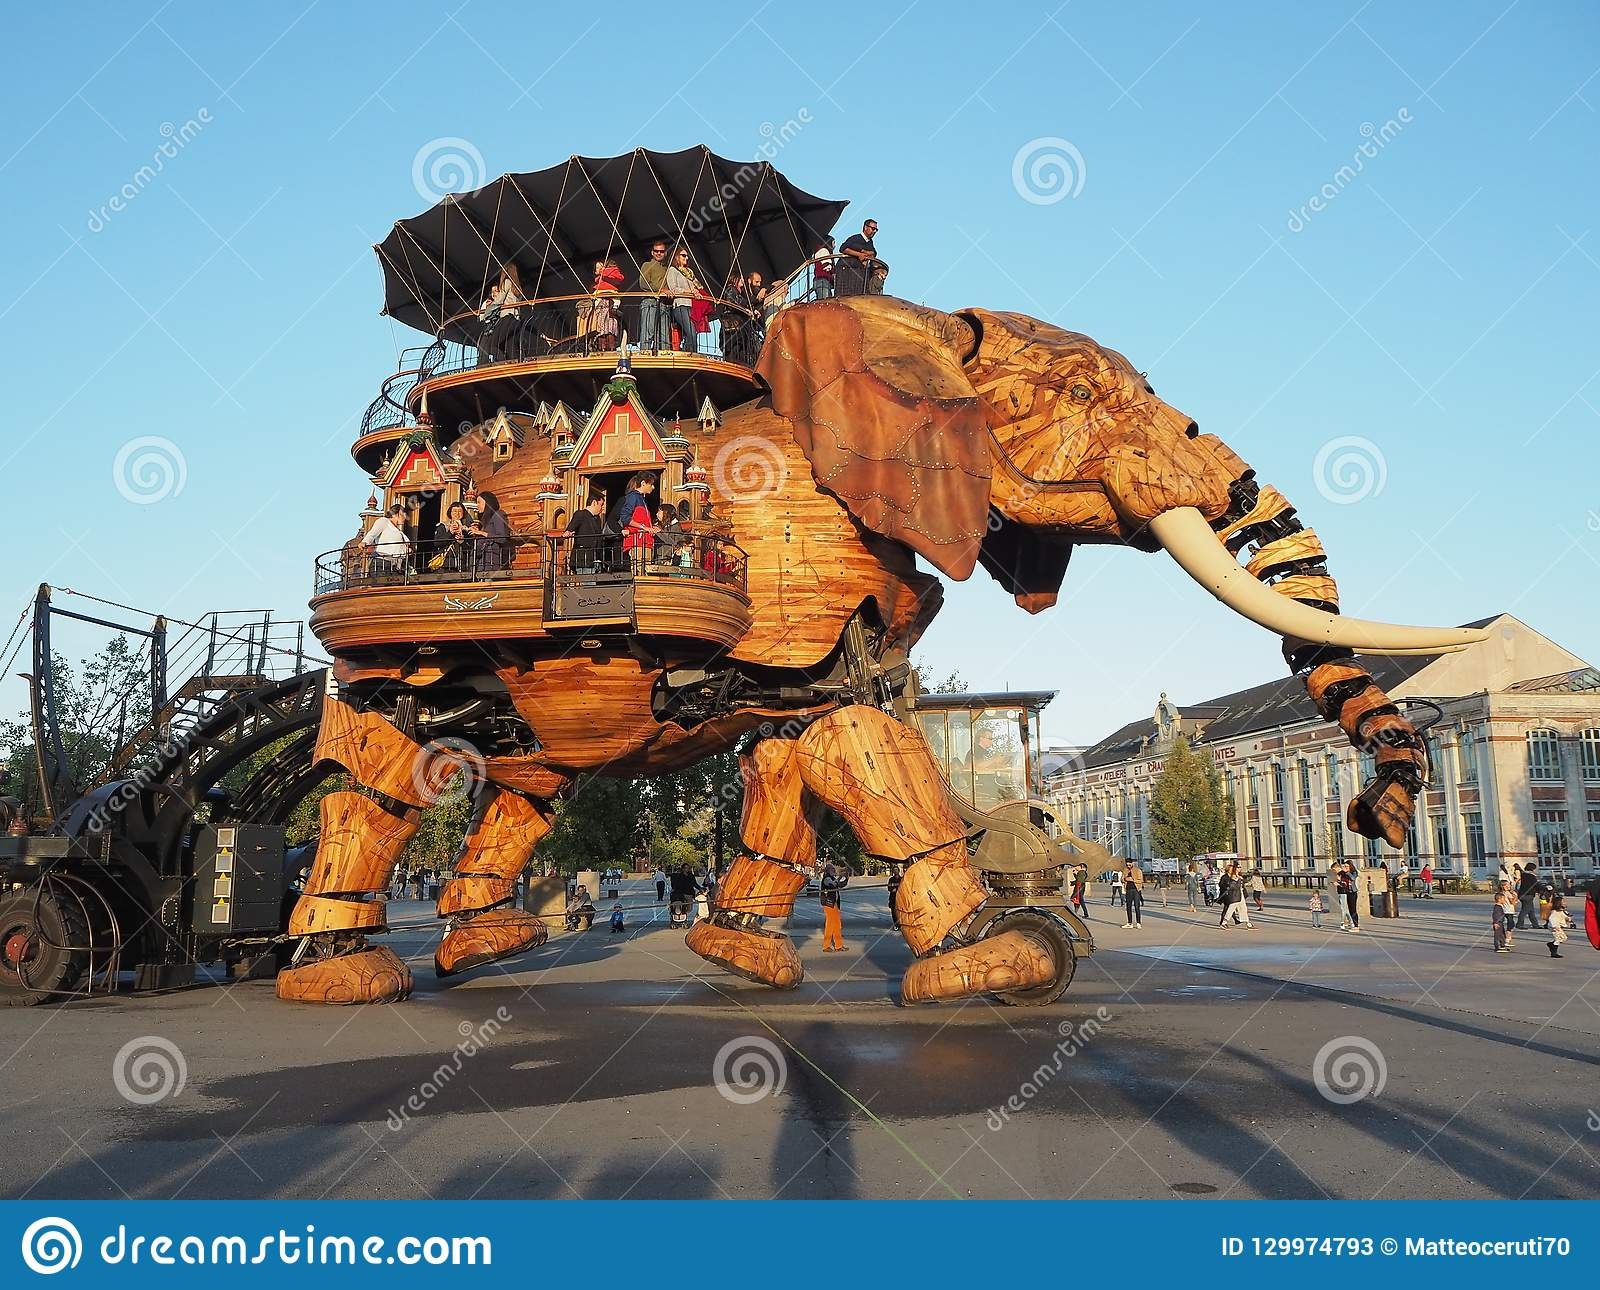 Nantes, France. The amusement park Machines of the Isle of Nantes. The big elephant